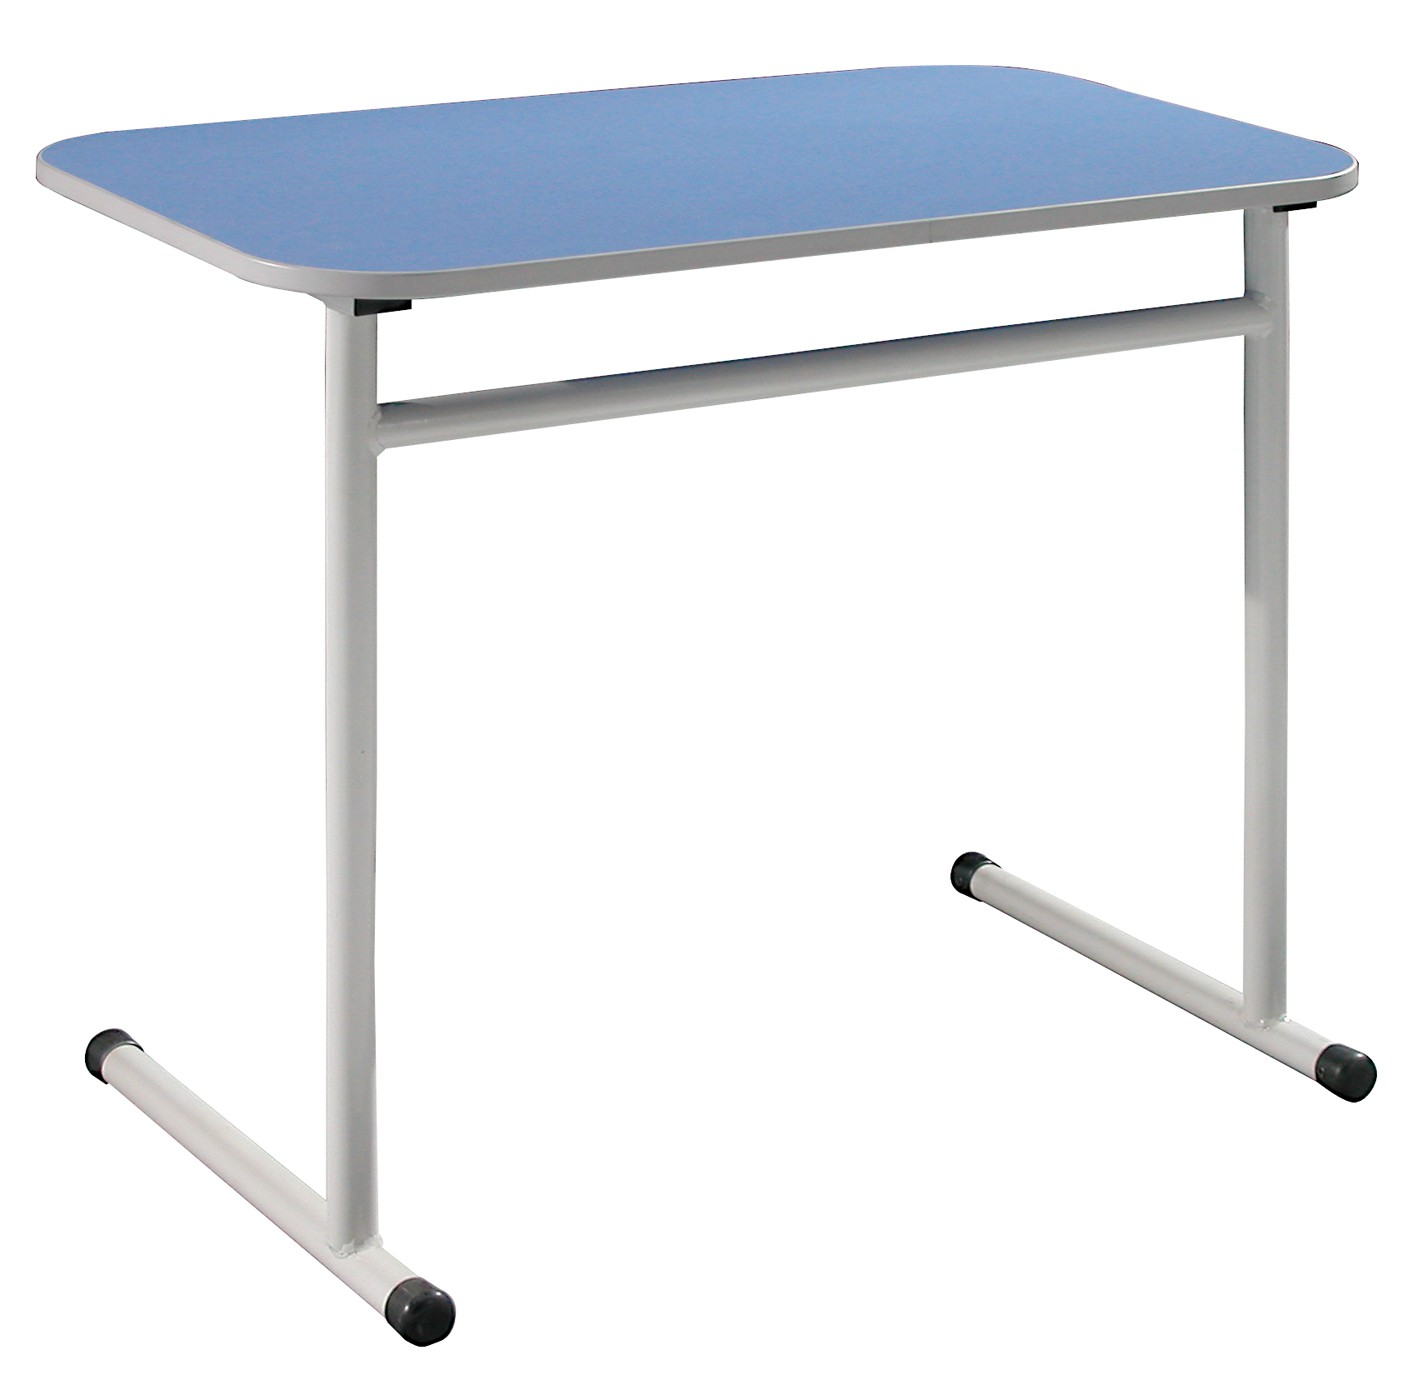 Table lateral clearance wood structure table nursing for Table structure